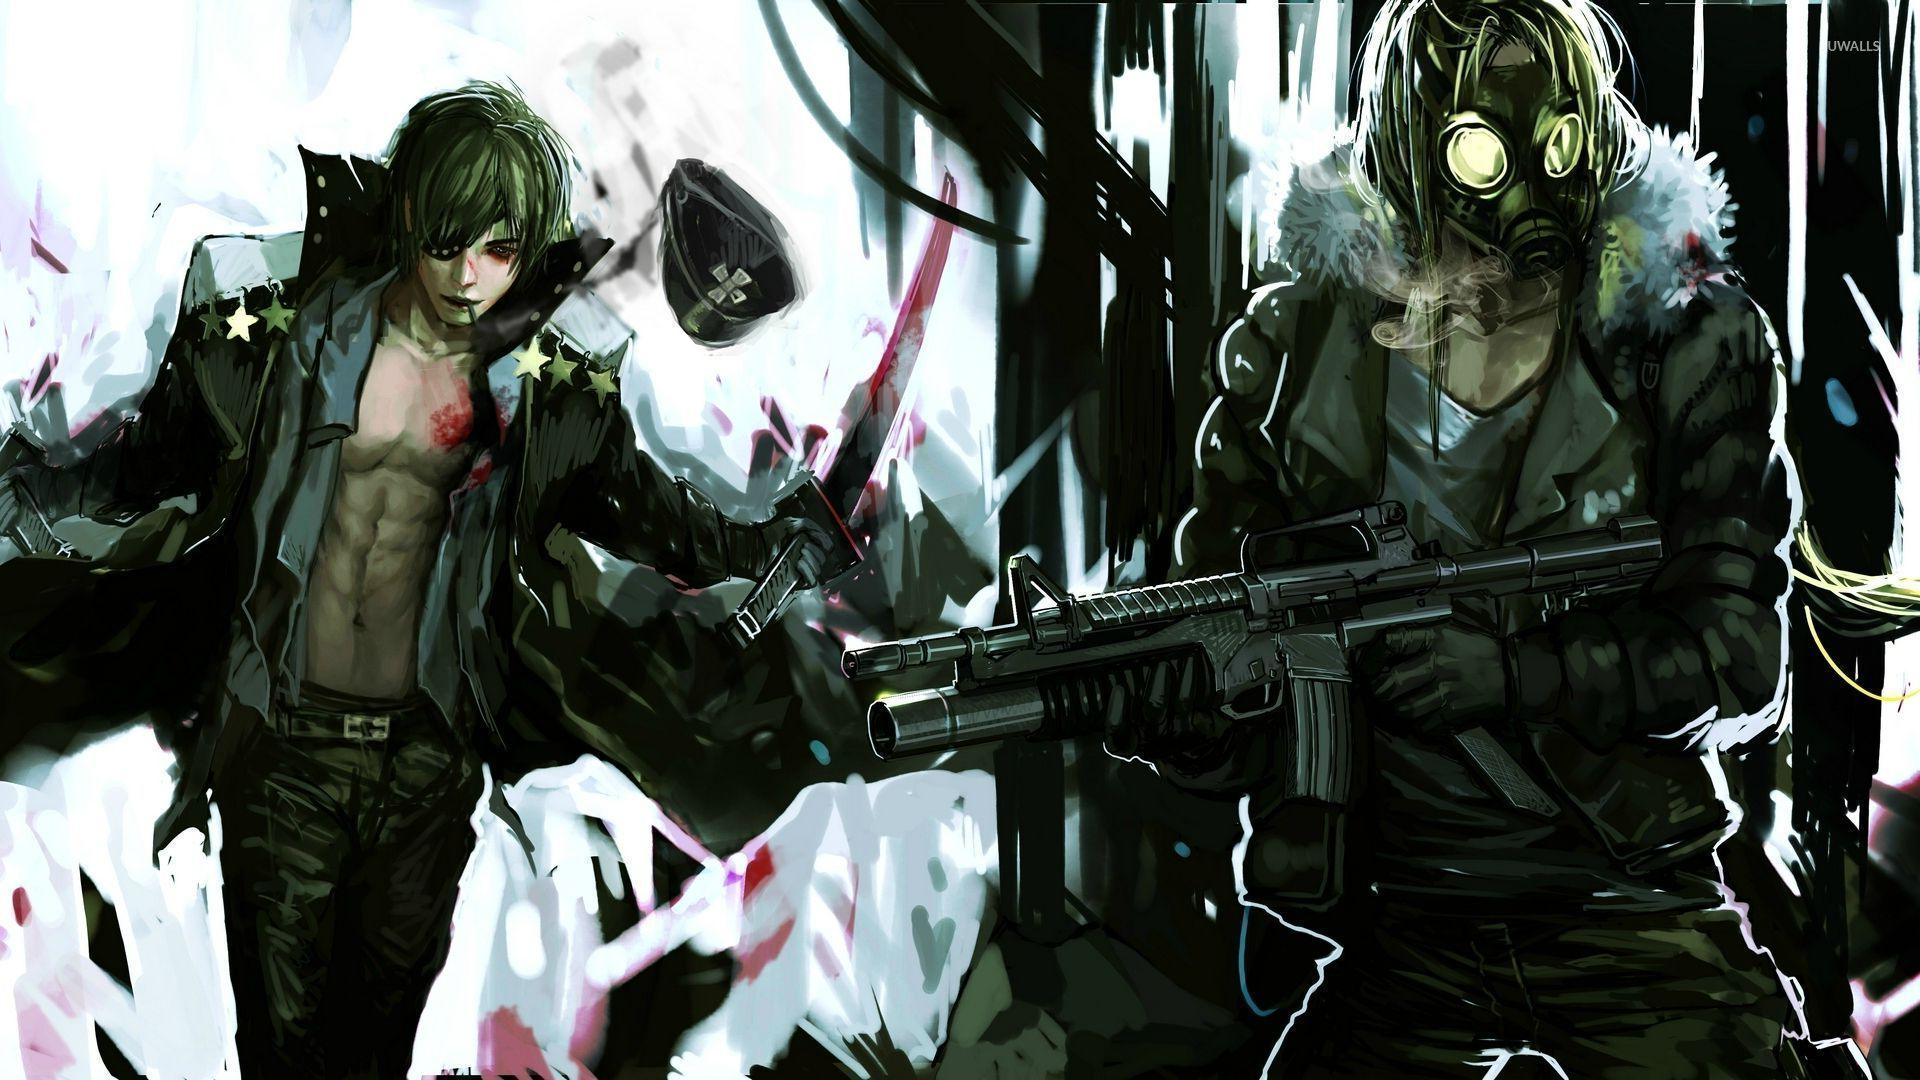 1920x1080 Anarchist anime guys wallpaper - Anime wallpapers - #28722